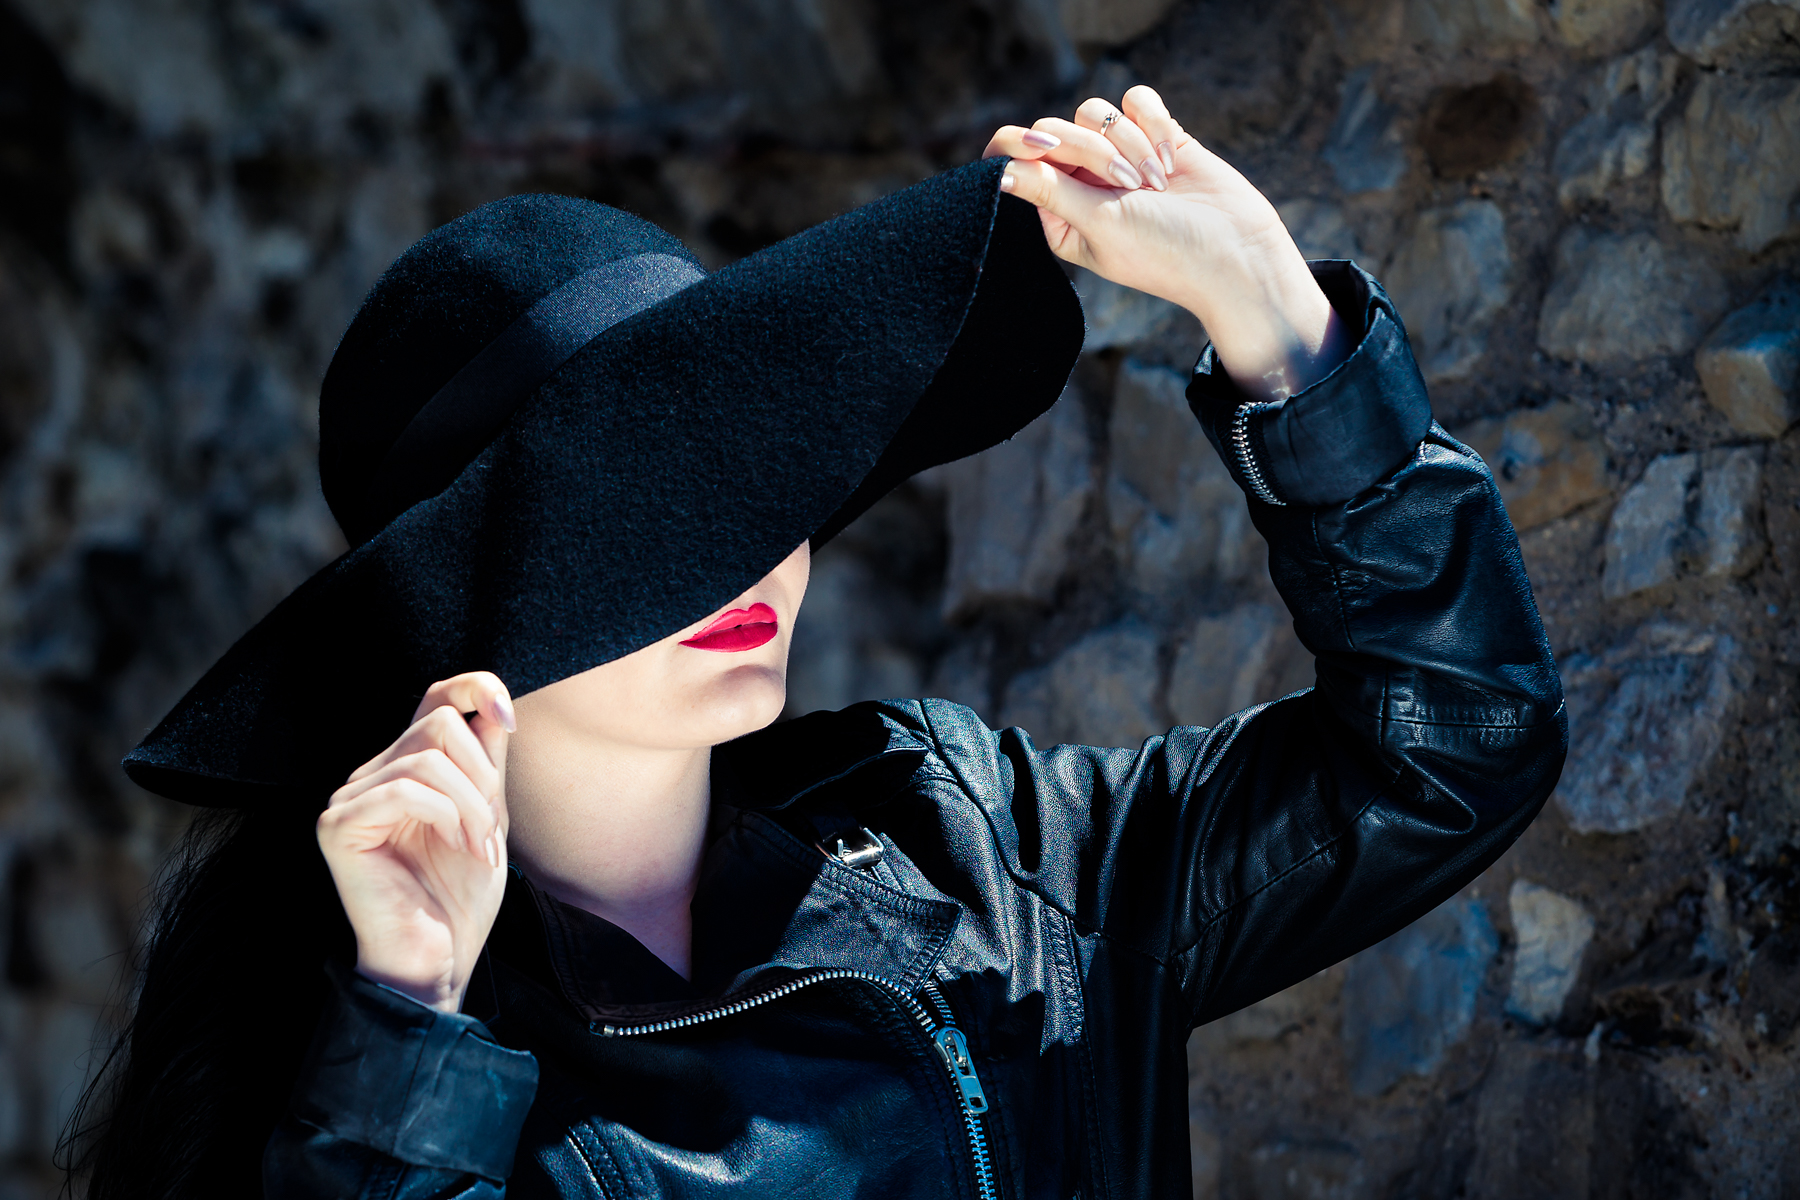 Classic beauty pose of a woman in a hat